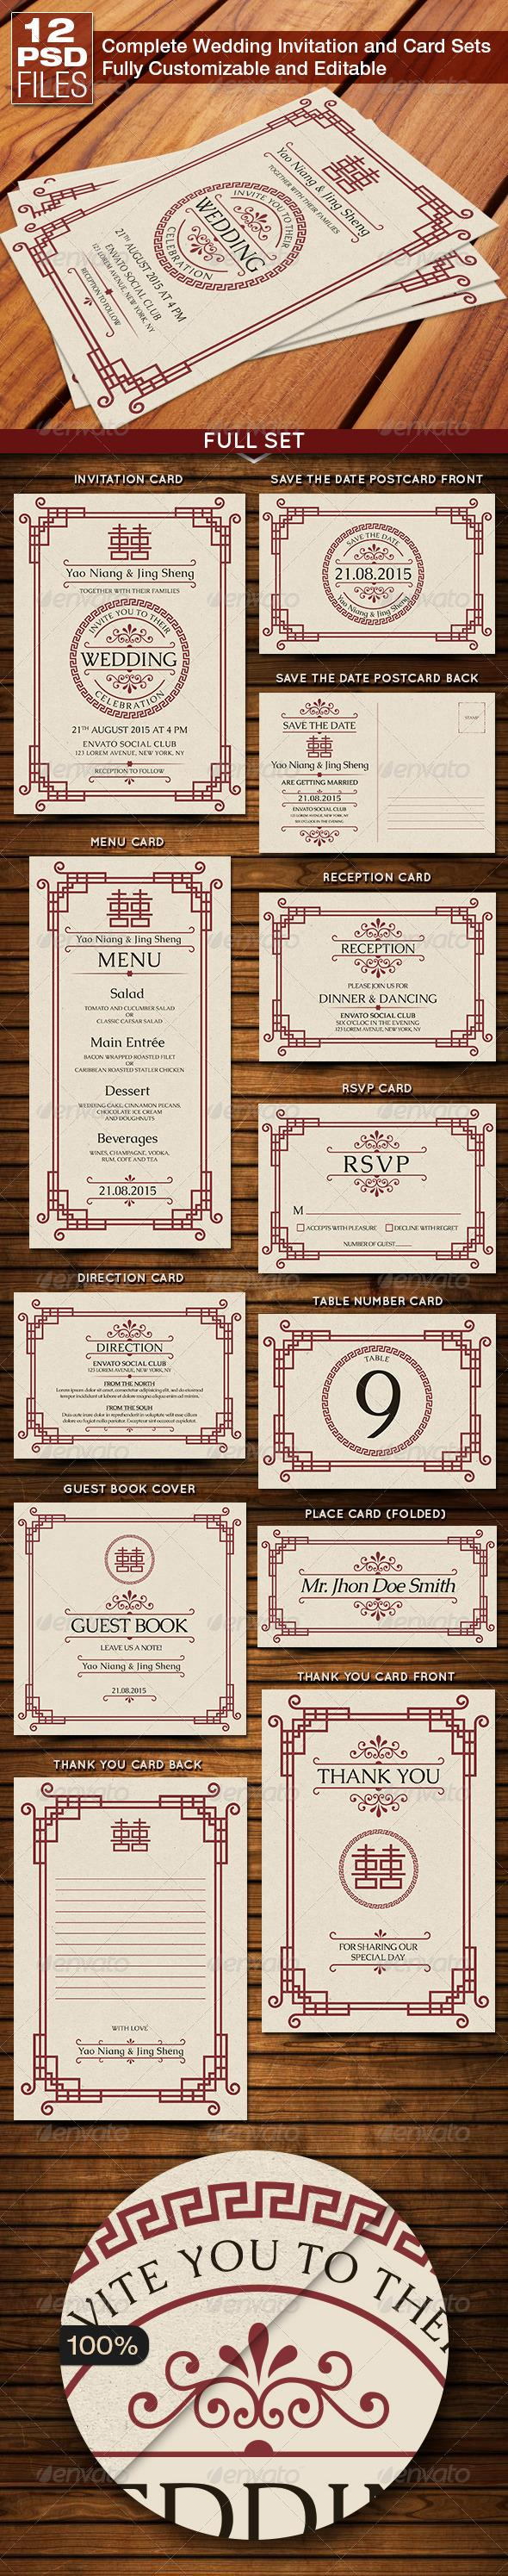 vintage chinese calendar wedding invitation card template